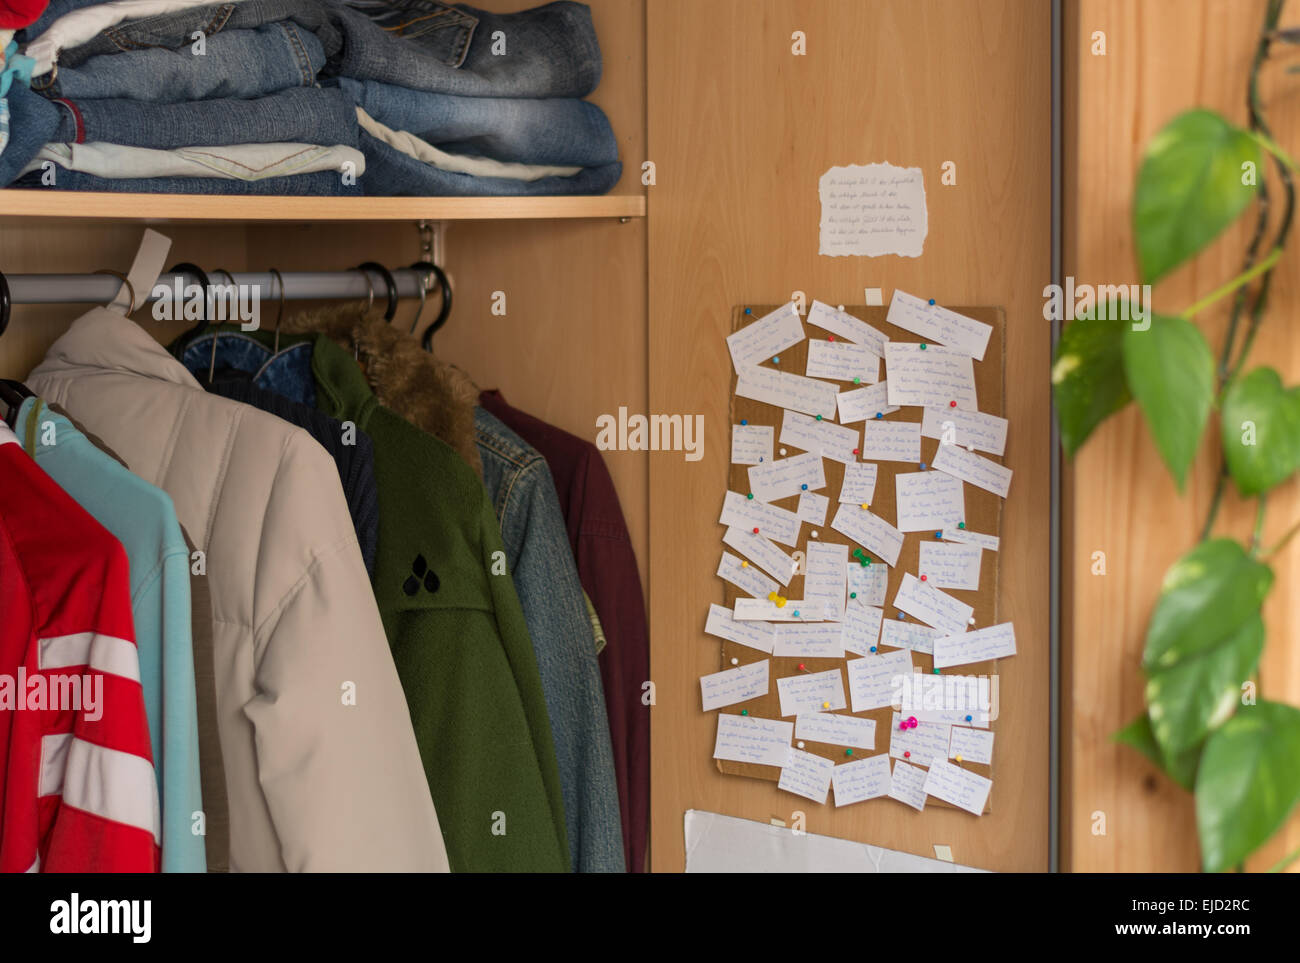 Collection of sayings on Wall in wardrobe - Stock Image